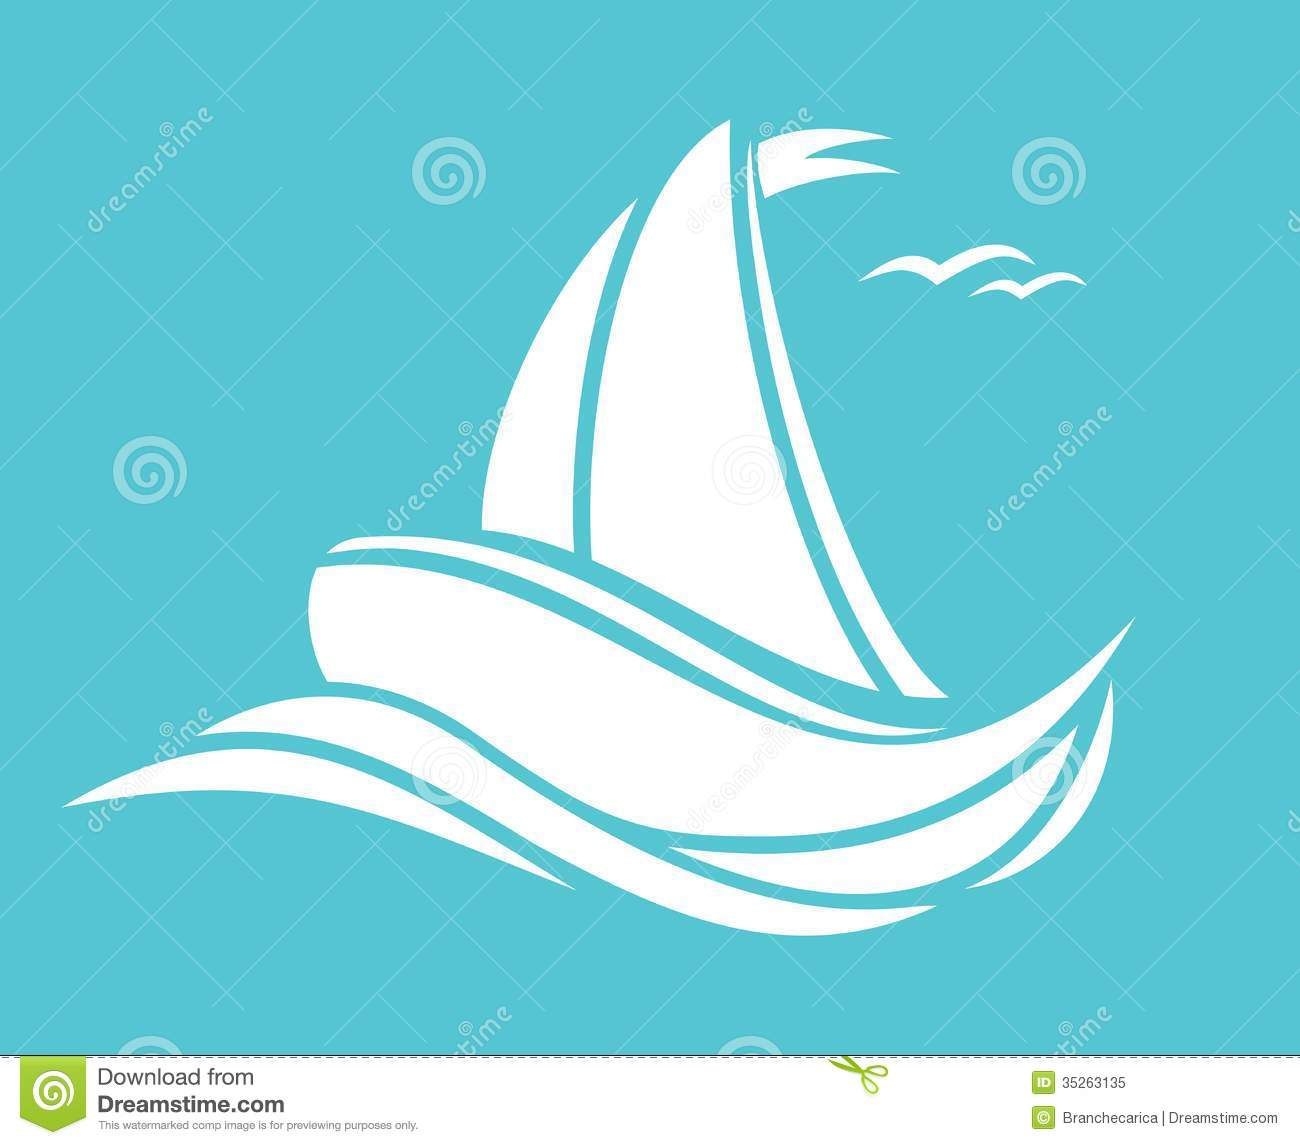 Sailing boat stock vector. Illustration of ferry, blue - 35263135